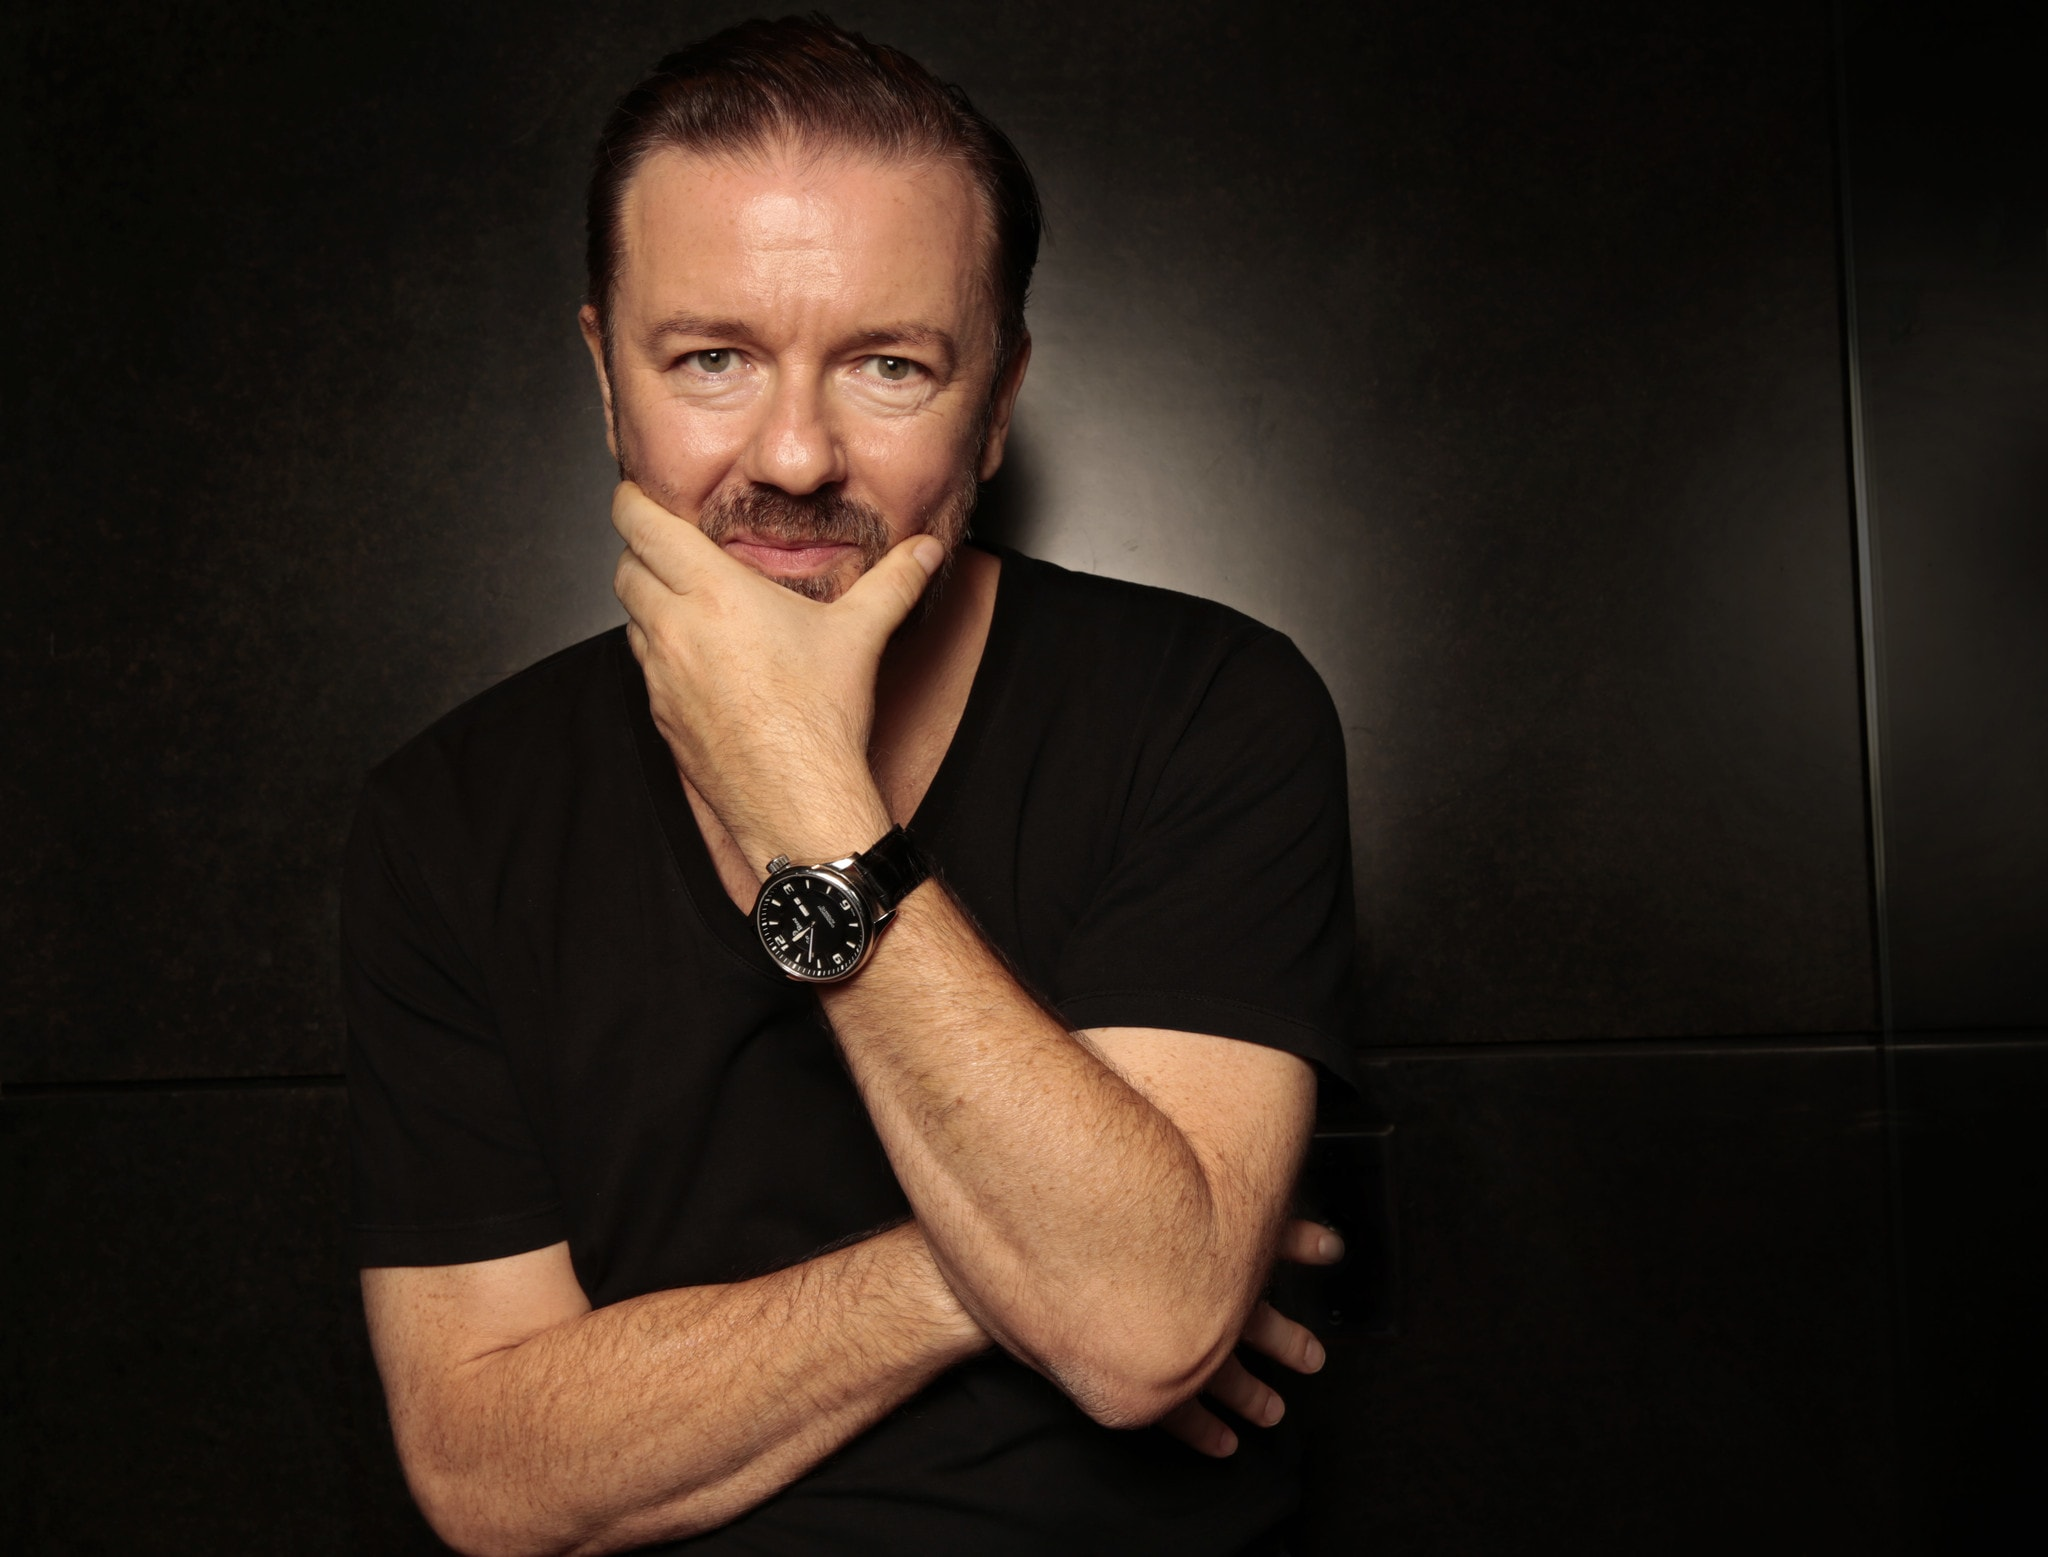 Ricky Gervais HQ wallpapers